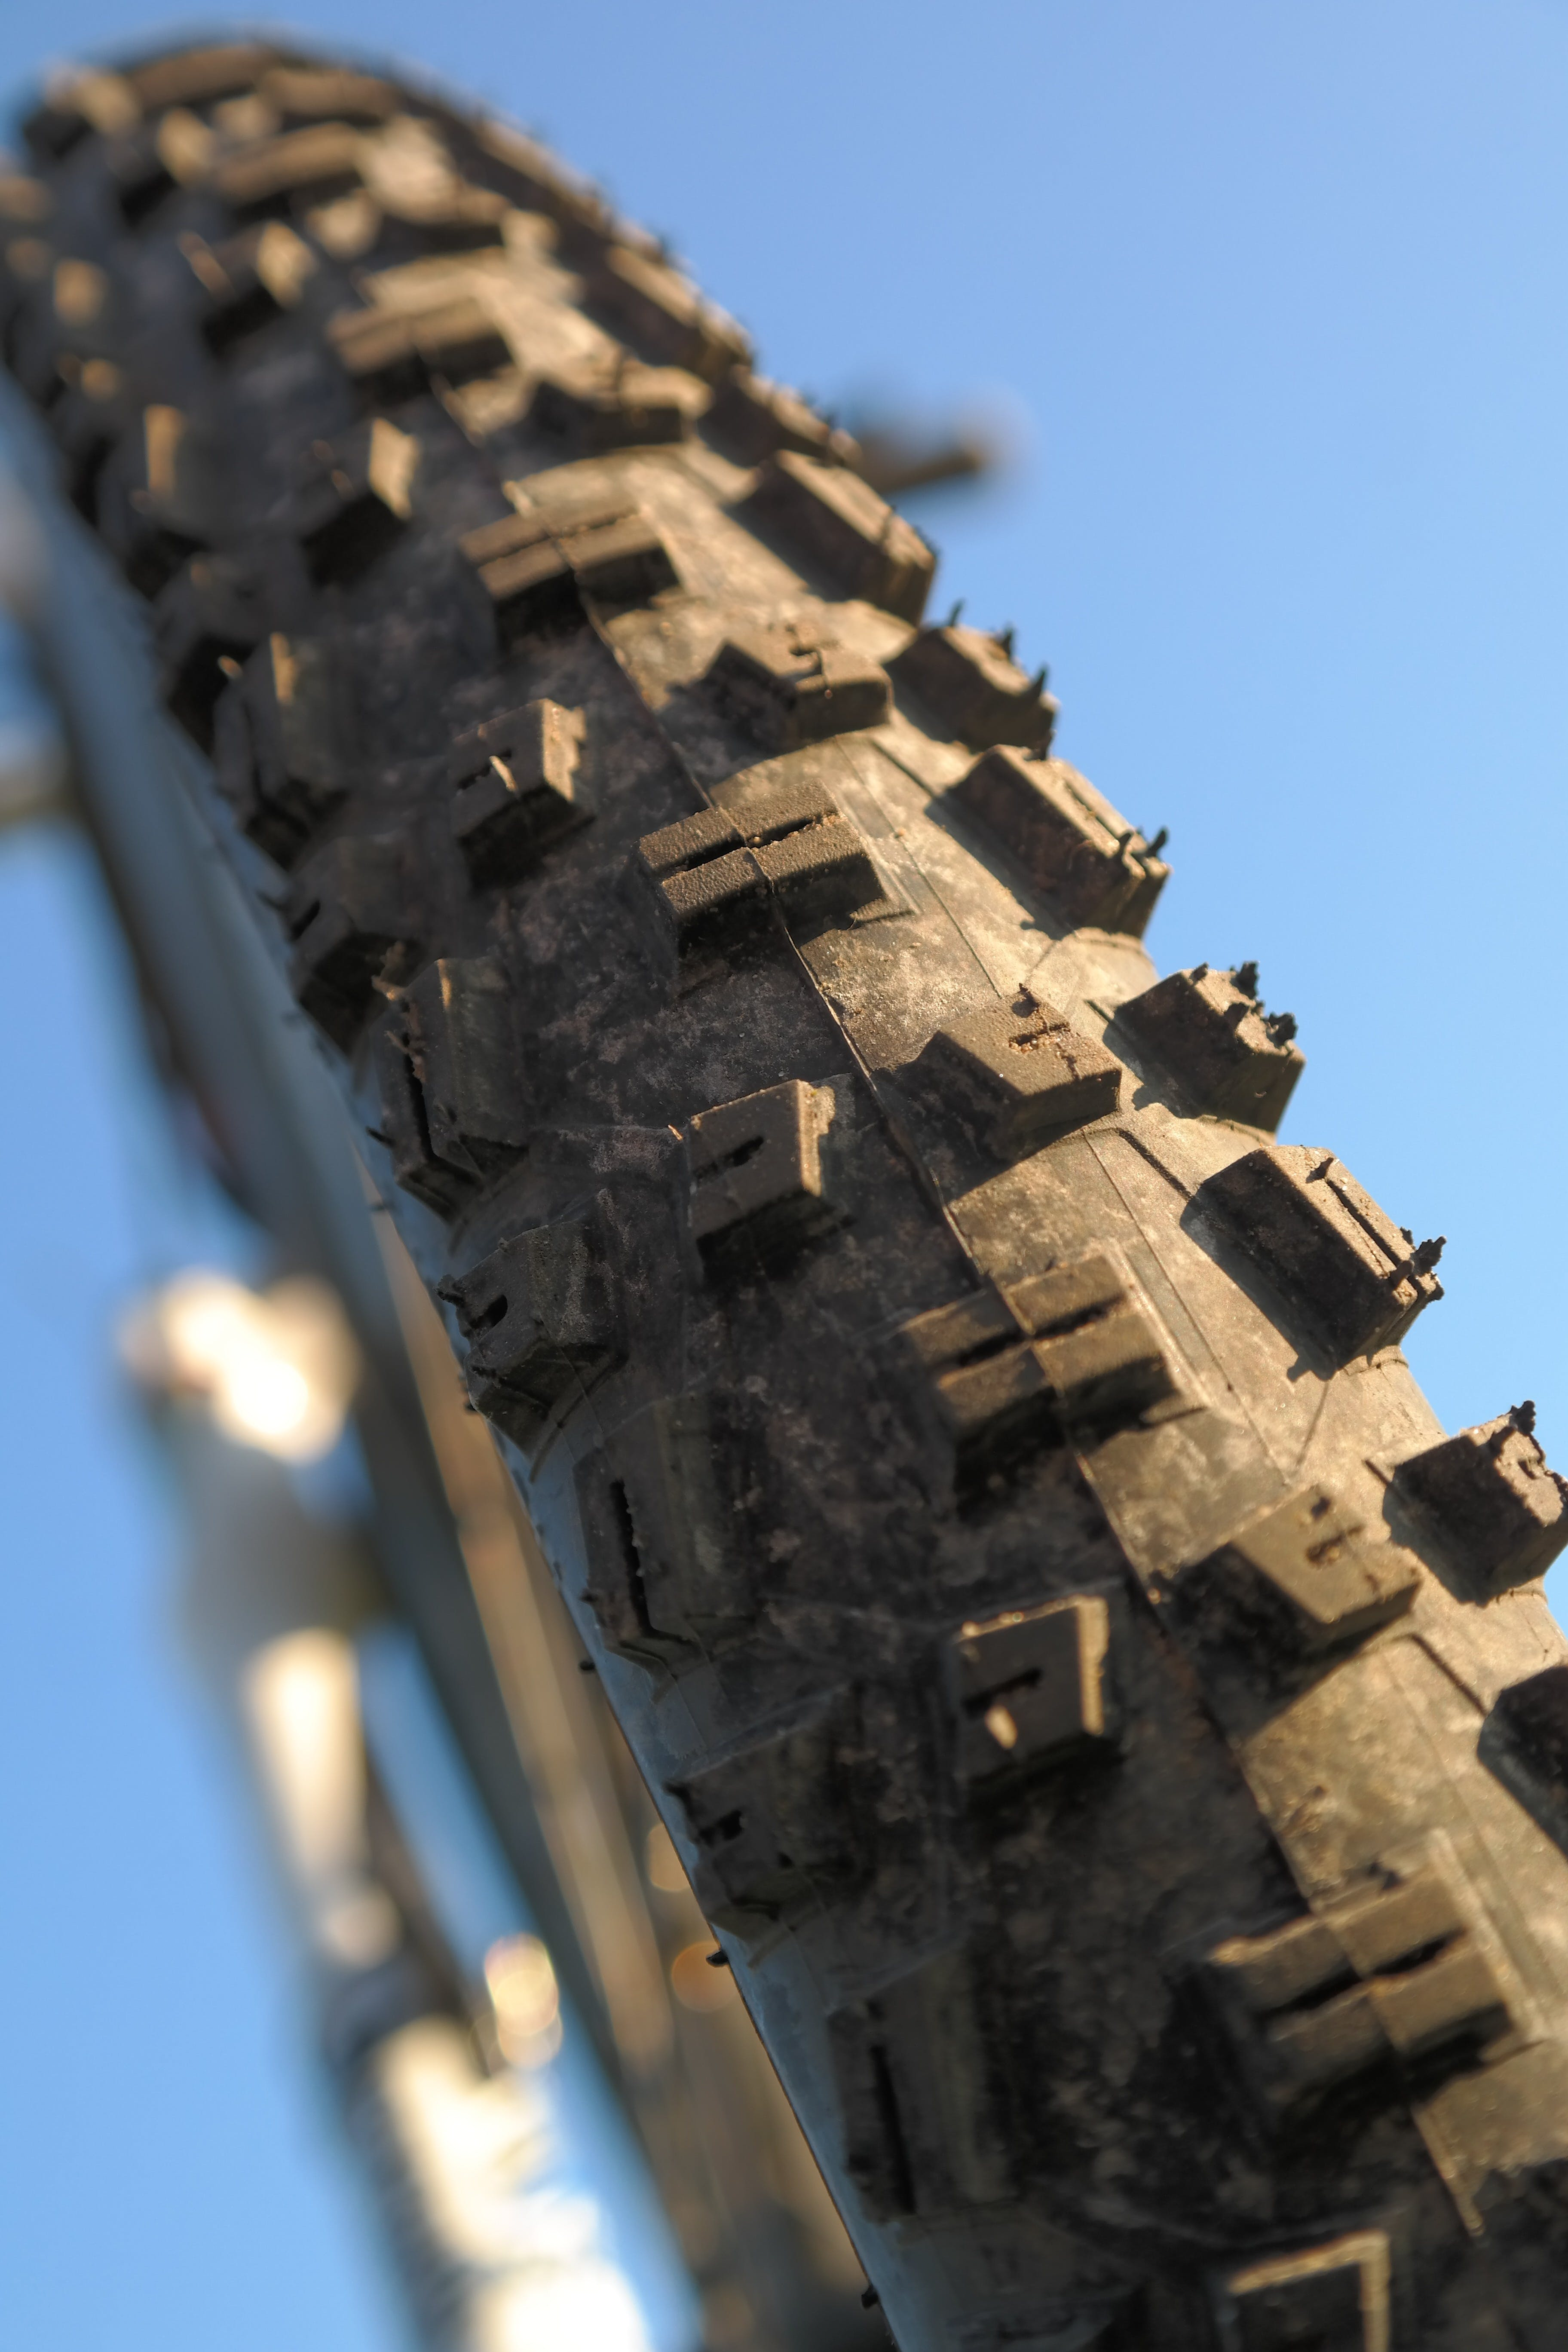 Macro Photography of Bicycle Tire